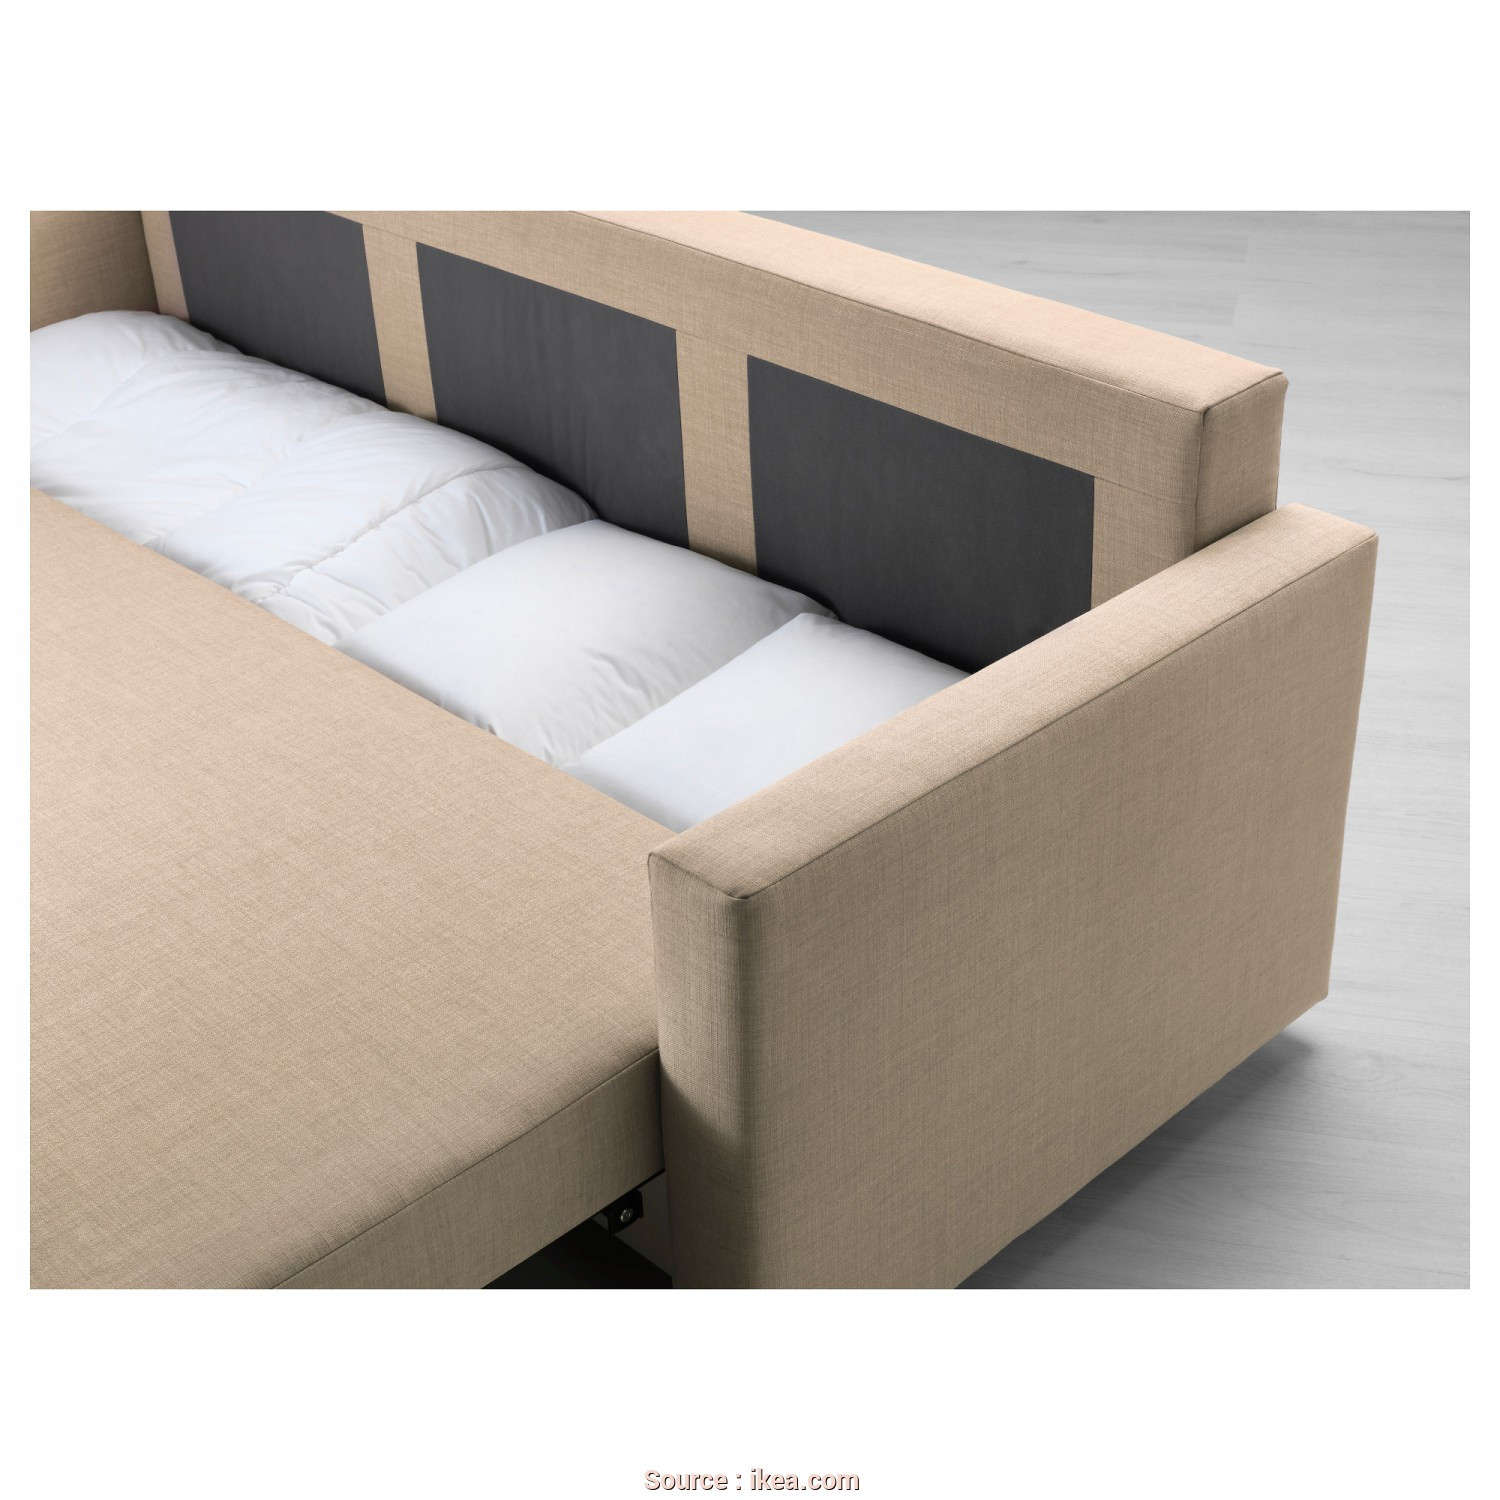 Divano Friheten 3 Posti, Esclusivo IKEA FRIHETEN Three-Seat Sofa-Bed Readily Converts Into A Bed